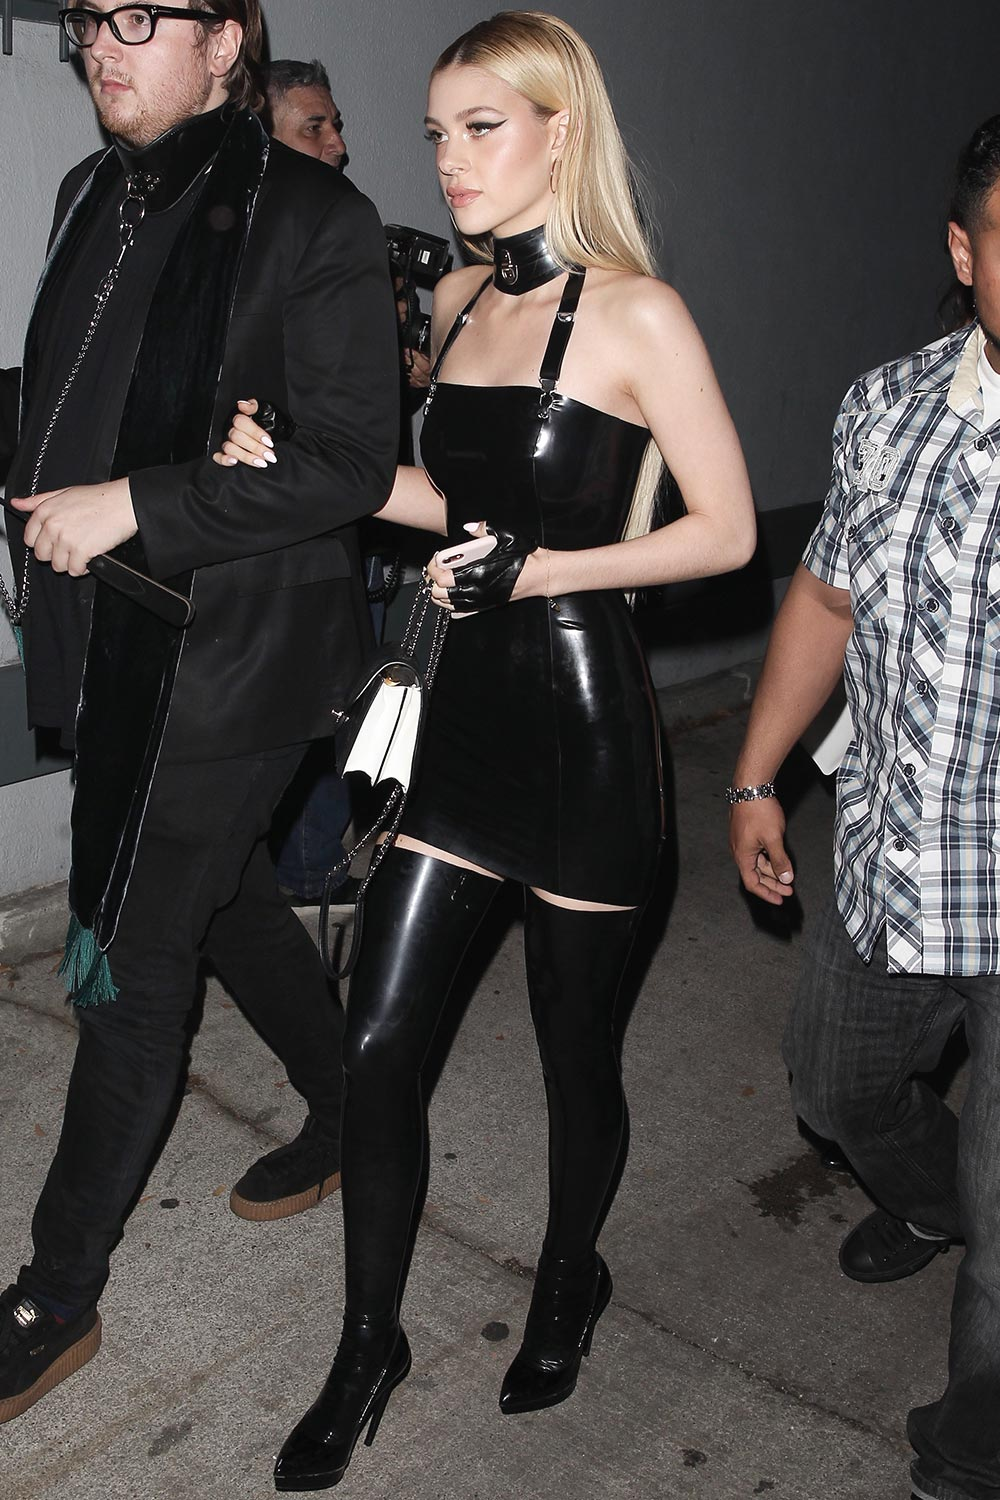 Nicola Peltz attends JustJared Halloween Party